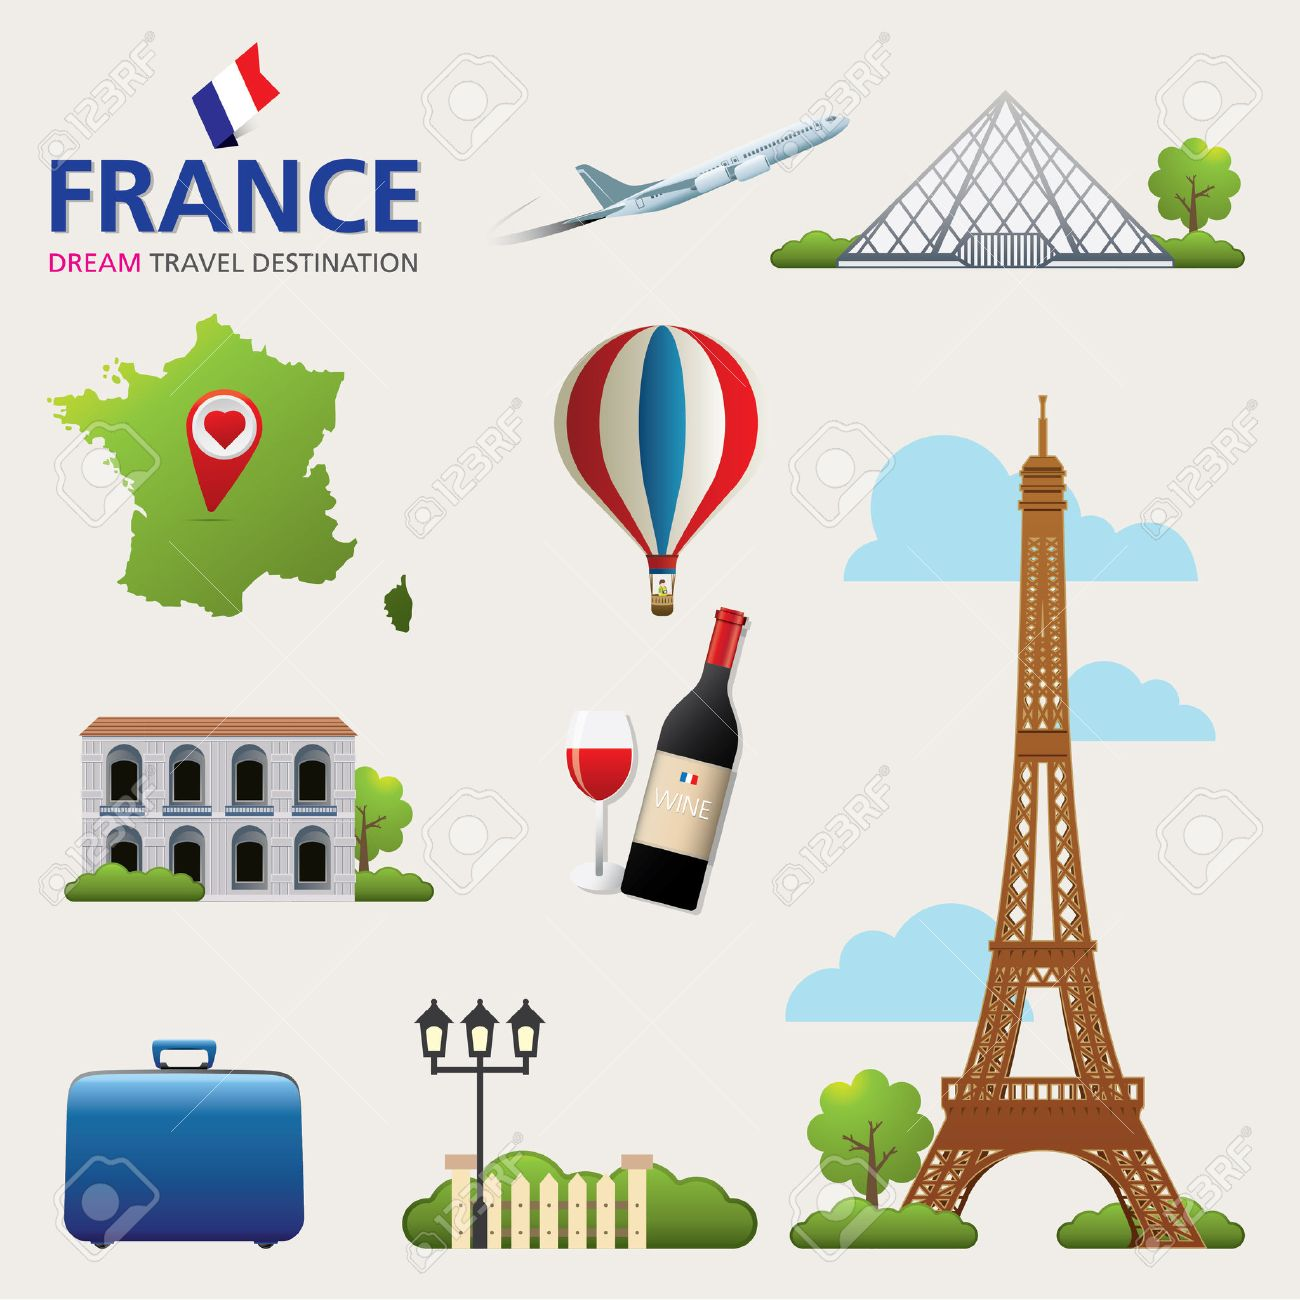 France Vector Travel Destinations Icon Set Stock